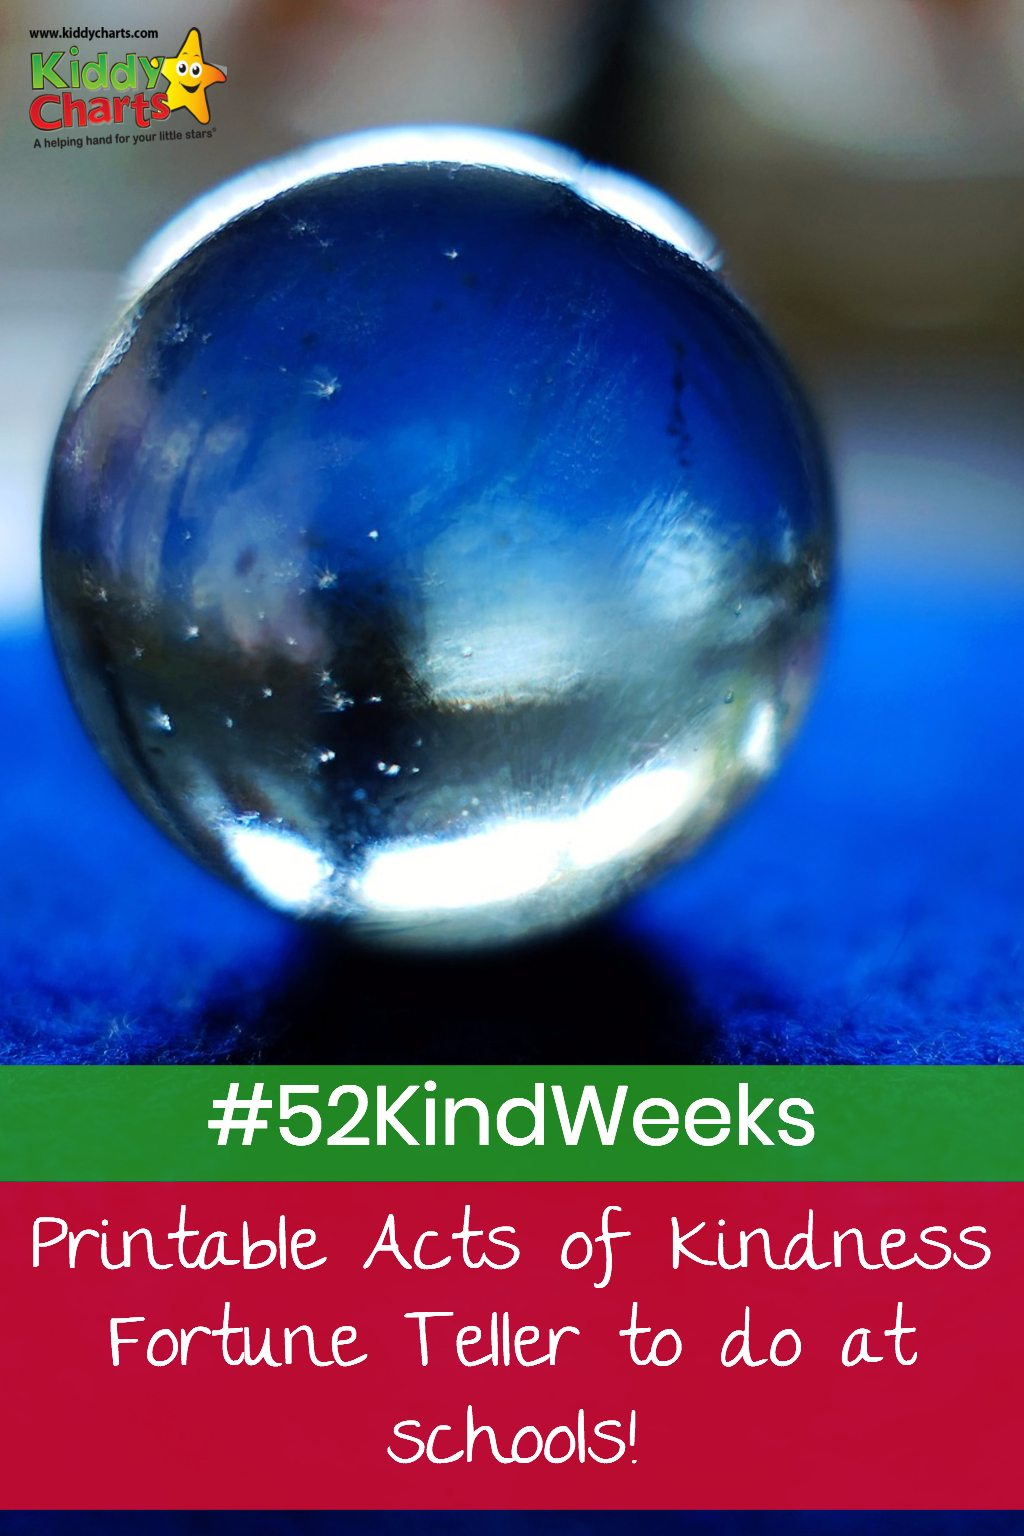 We have a lovely fortune teller for you in #52KindWeeks - why not try it at school as all the random acts of kindness are made to be done there or beforehand! #BeKind #Kindness #RAOK #RandomActsofKindness